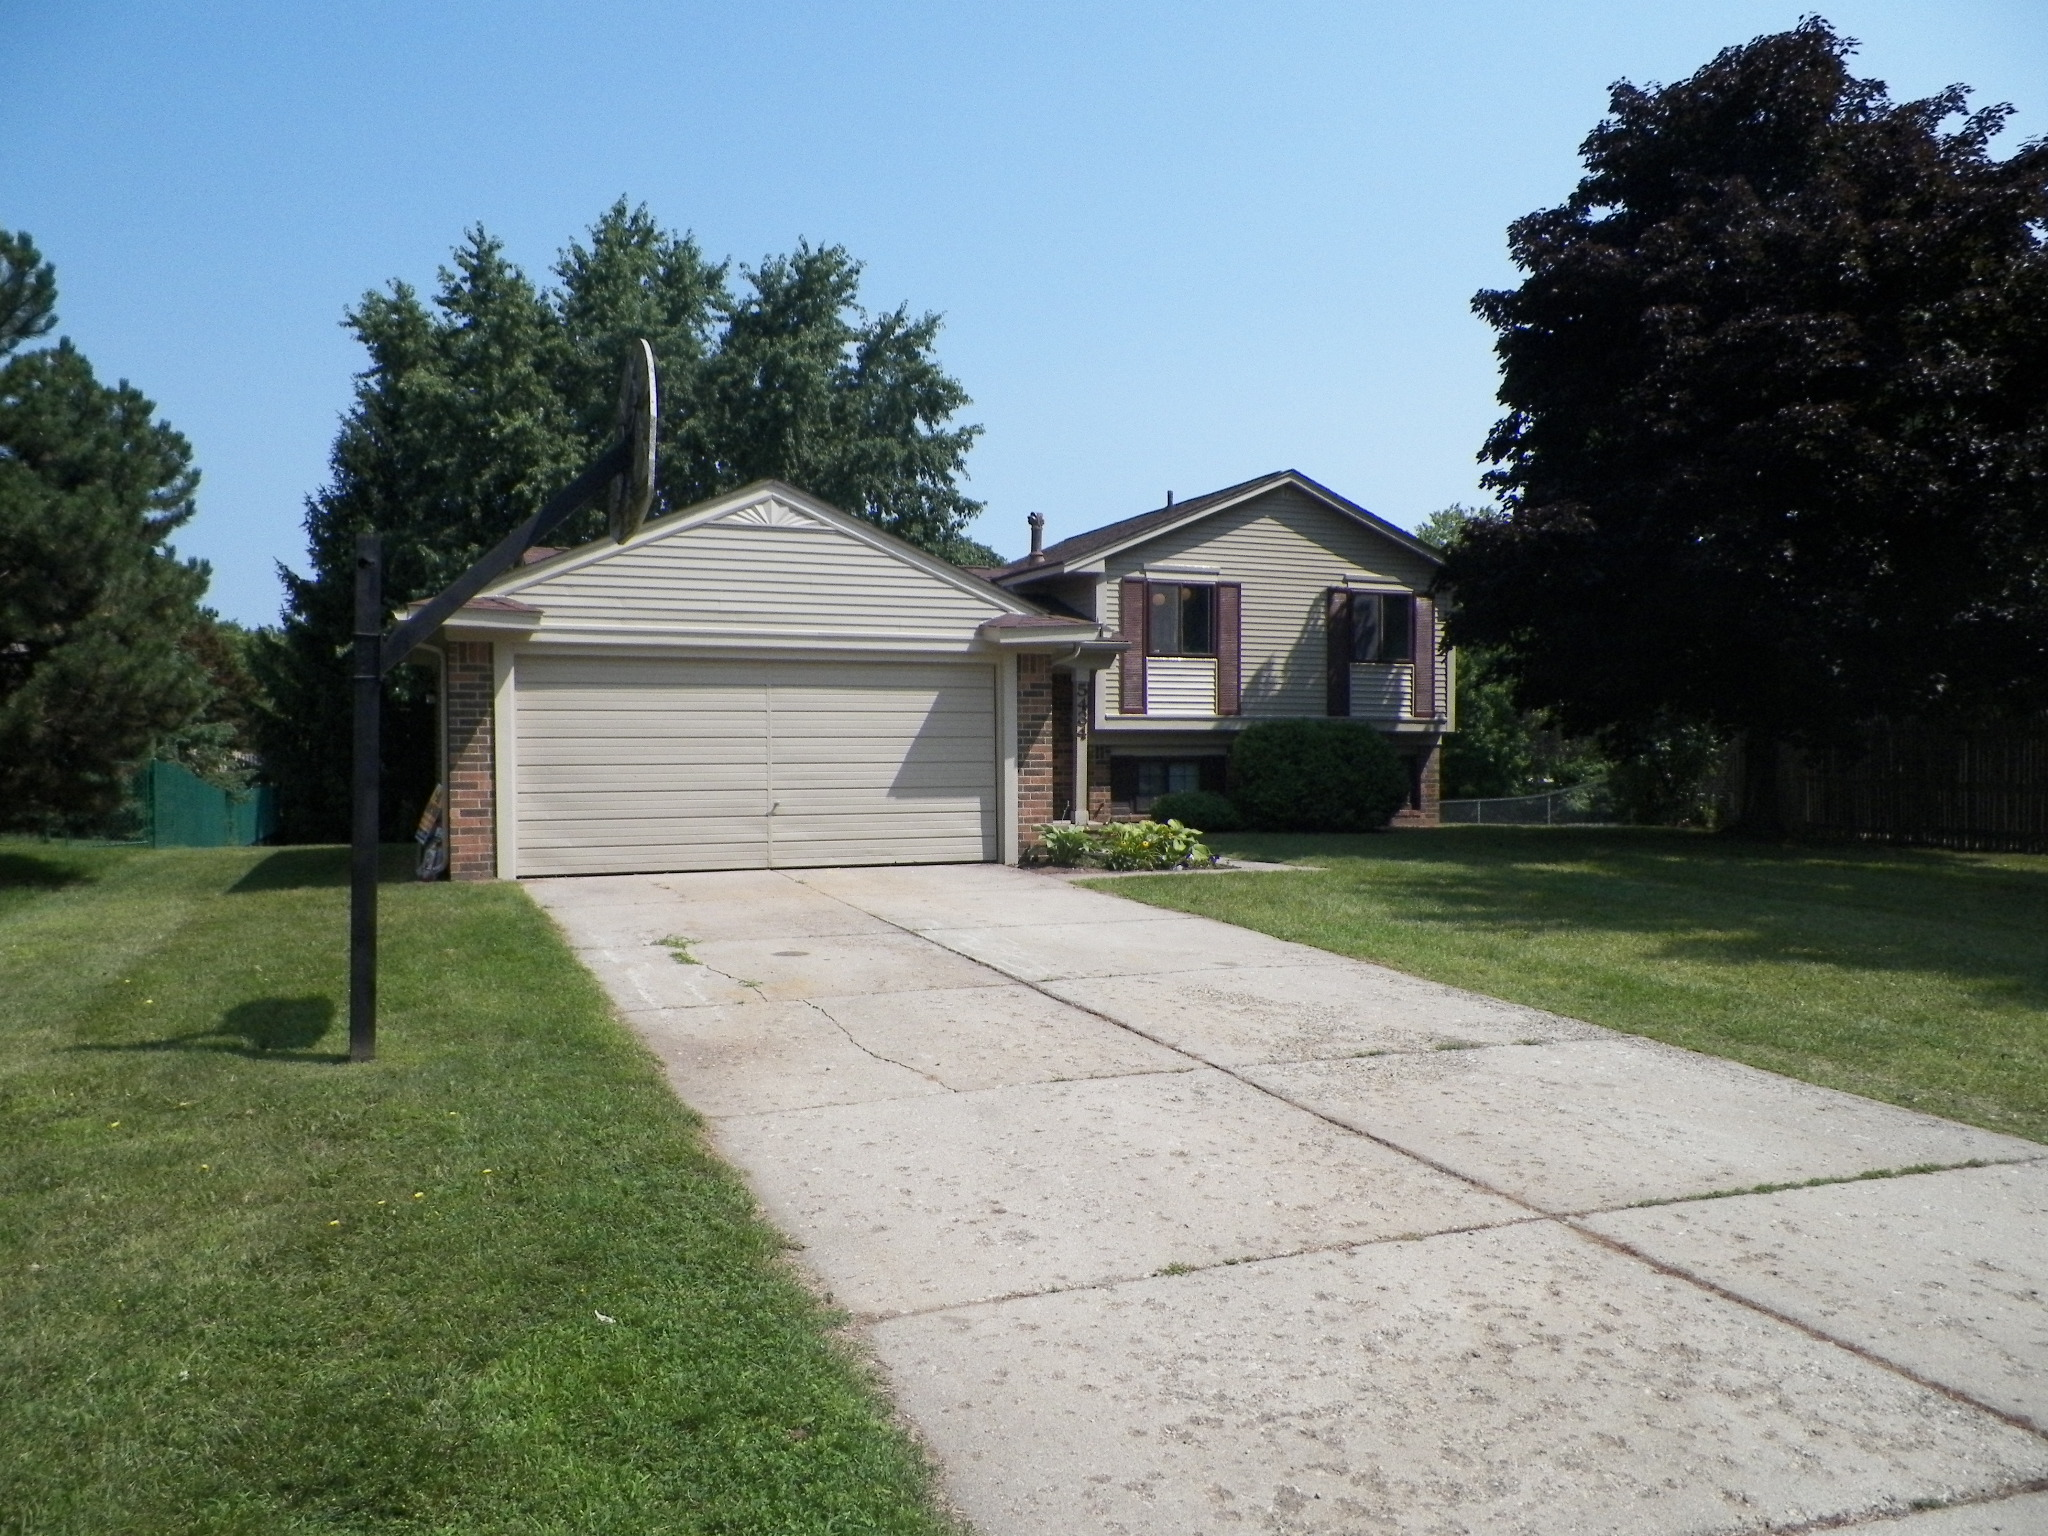 Pheasant Run- Clarkston - $164,000   DOM 56 / Sold for $4,000 over asking price / 27 Showings